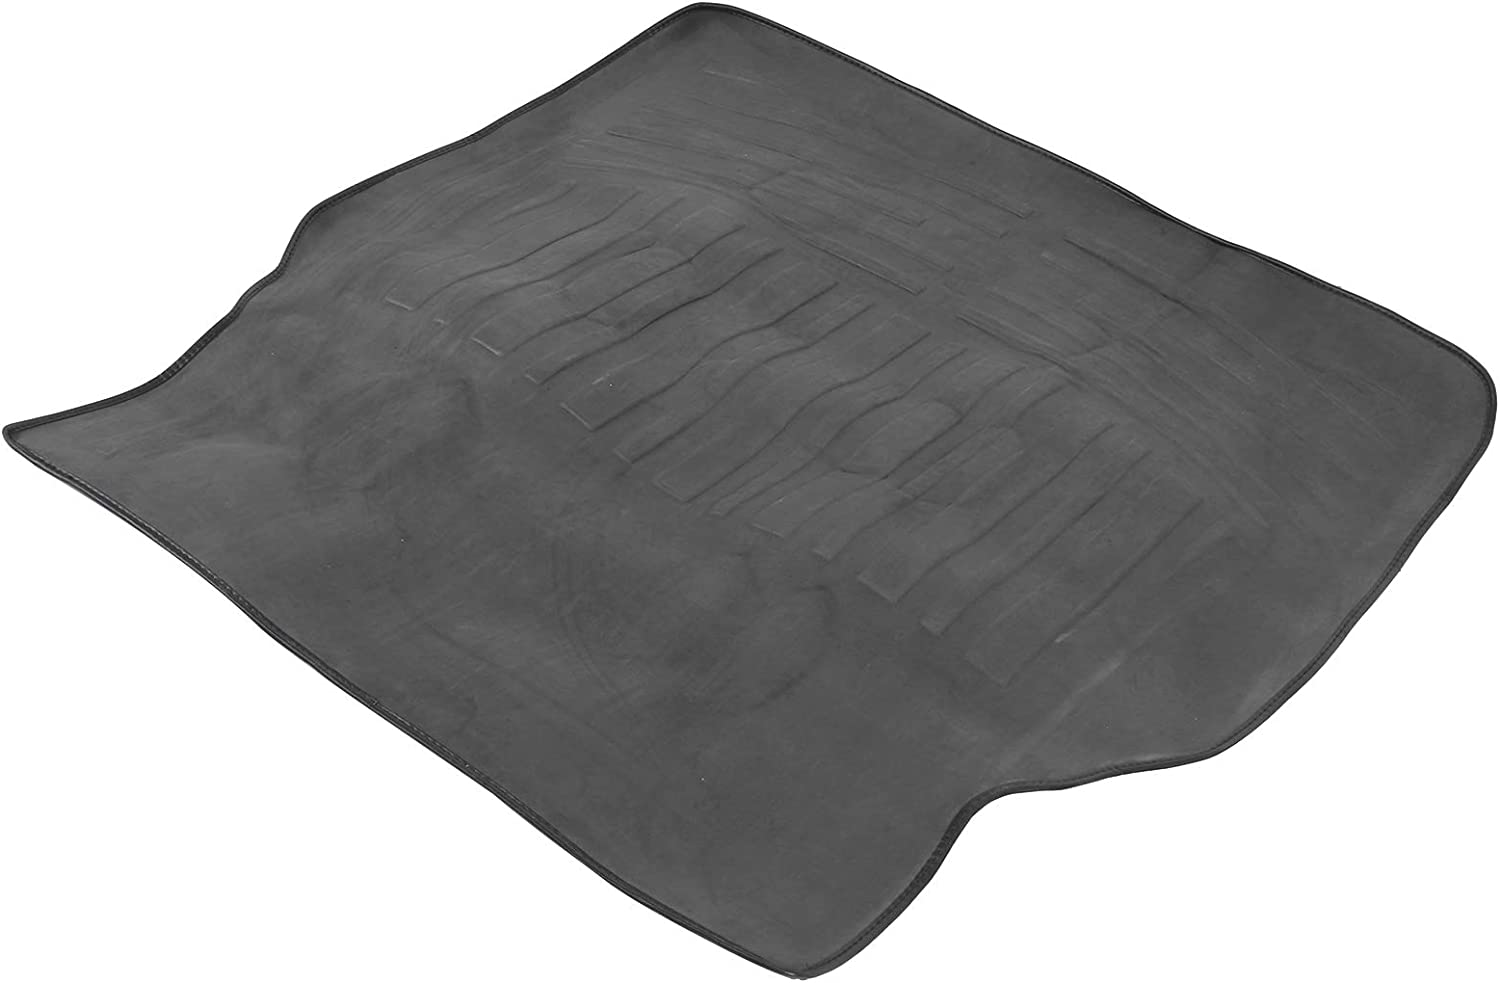 Qiilu Car Trunk High quality Mat Rear Protective PVC Floor Limited time for free shipping Cargos